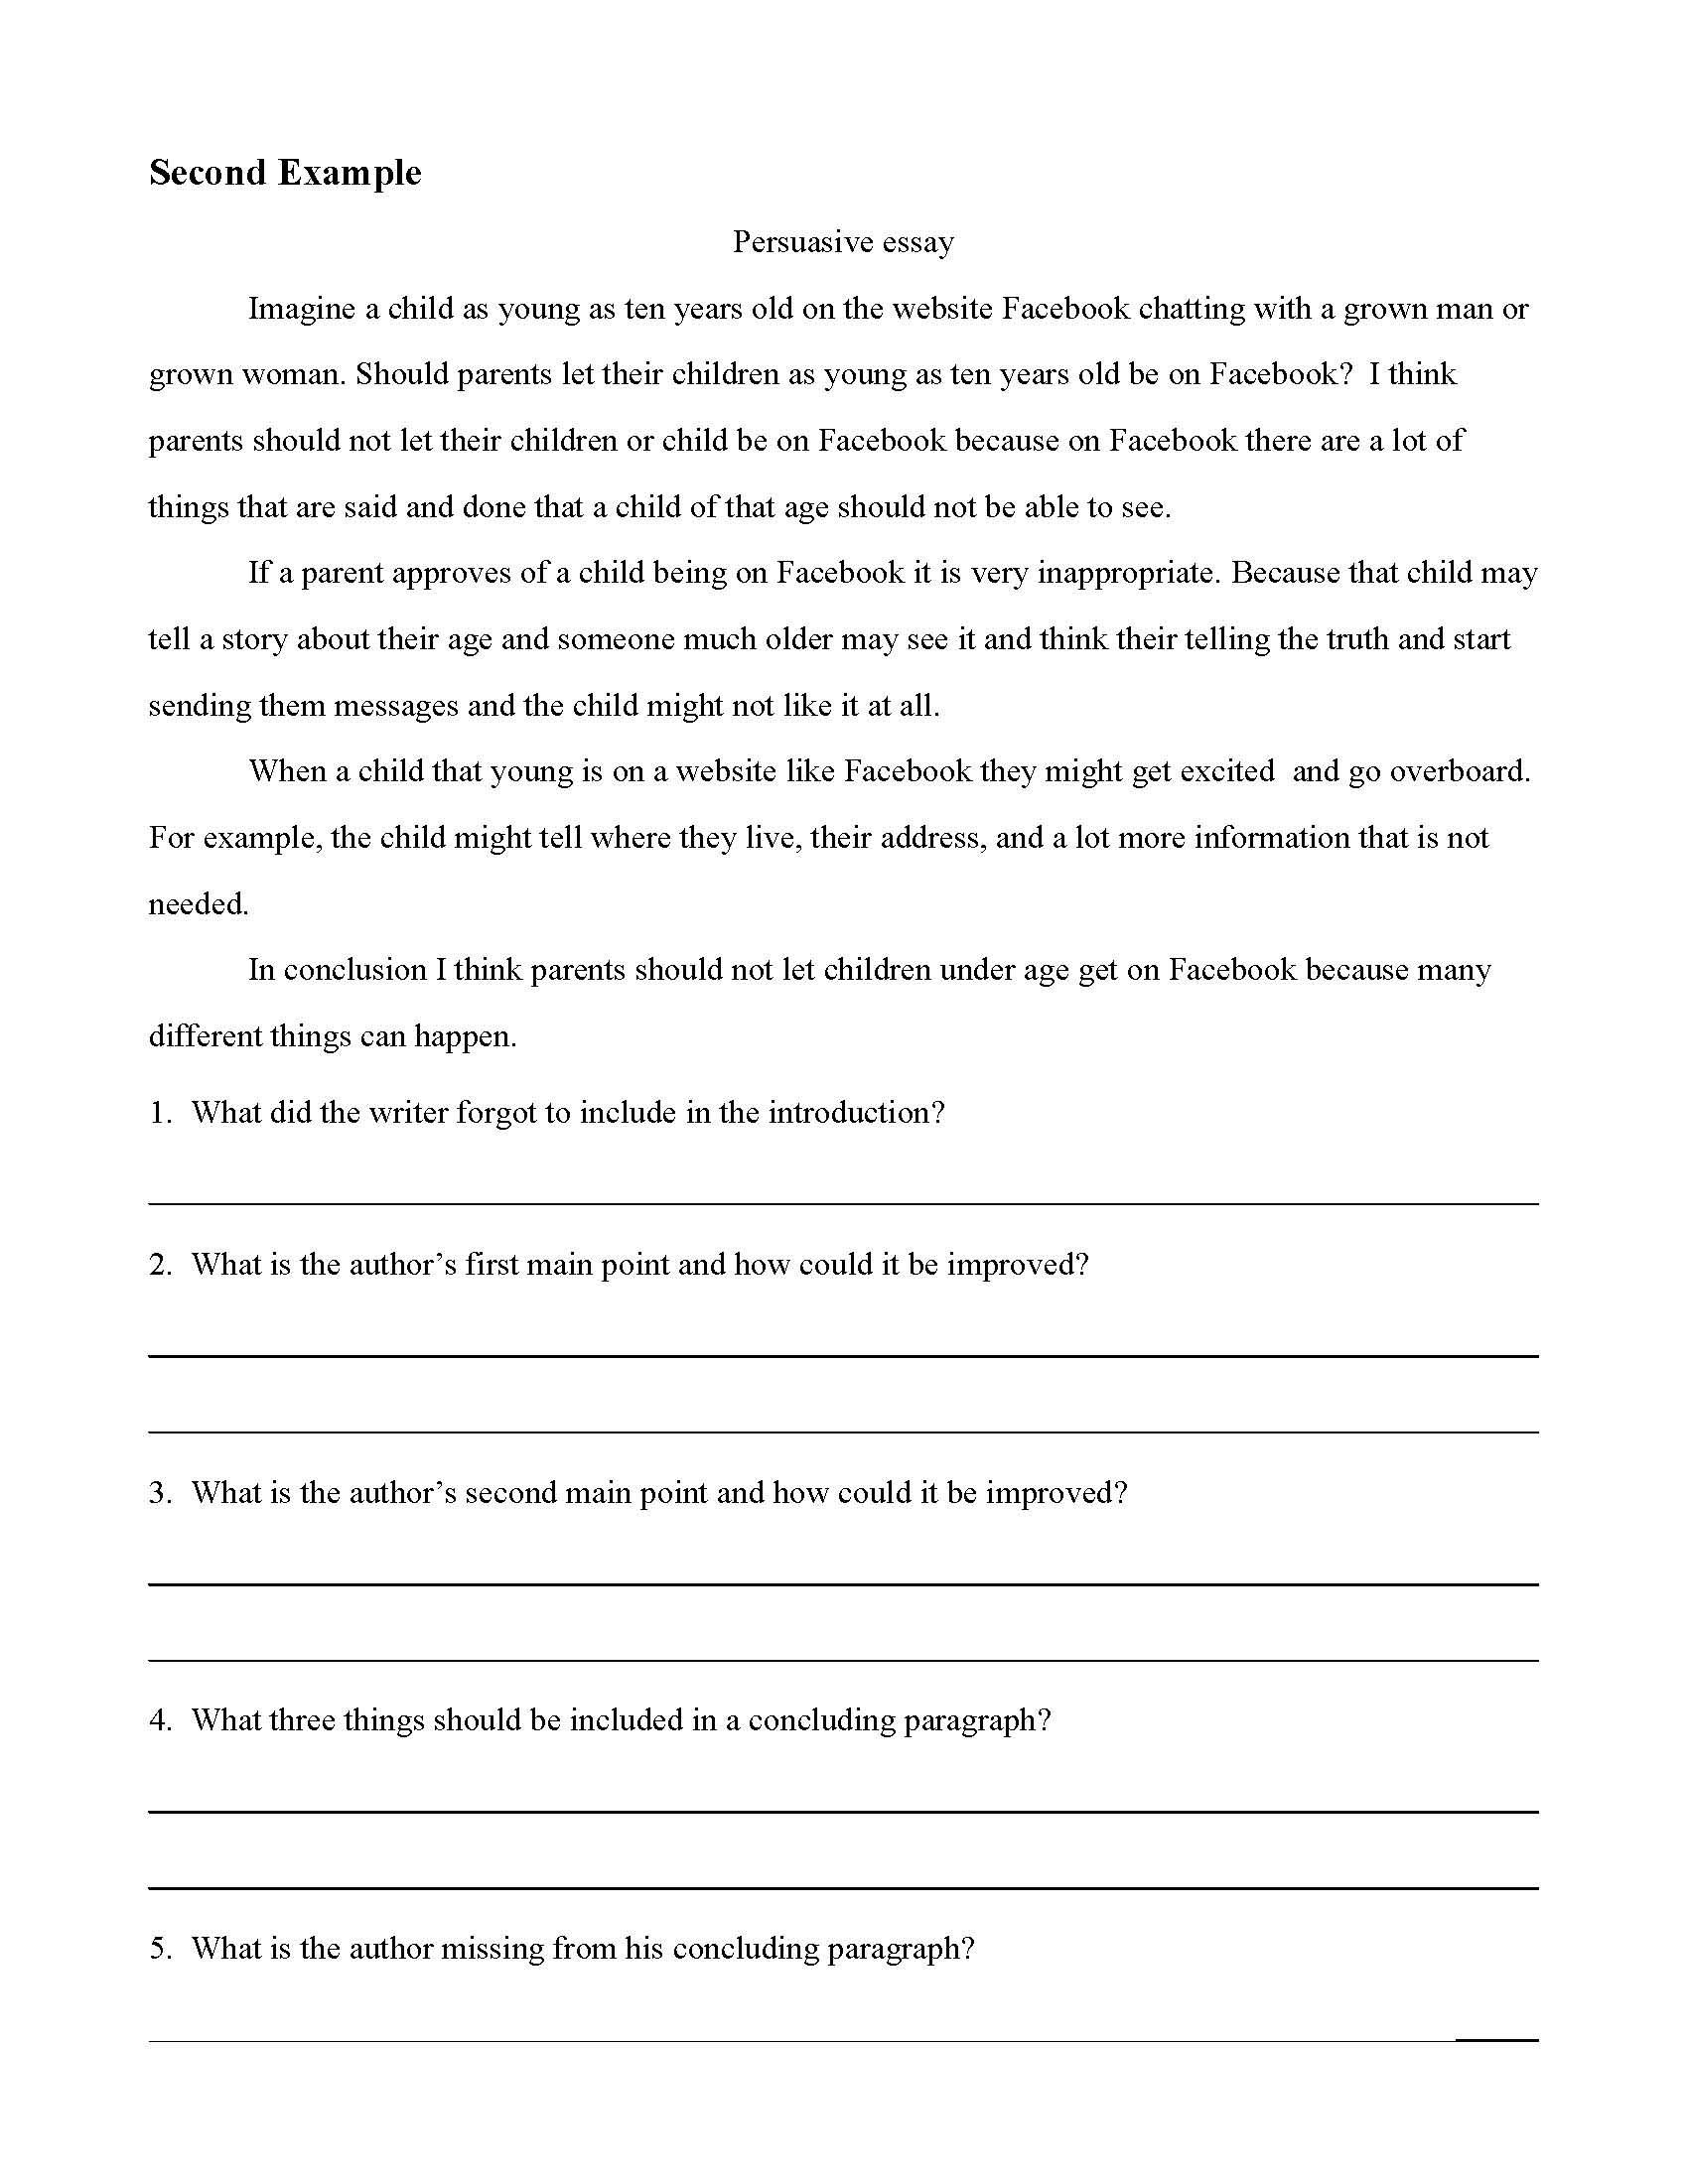 010 Persuasive Essays Of Excellent Examples 5th Grade Written By Graders Example Argumentative-persuasive Essay Topics Full